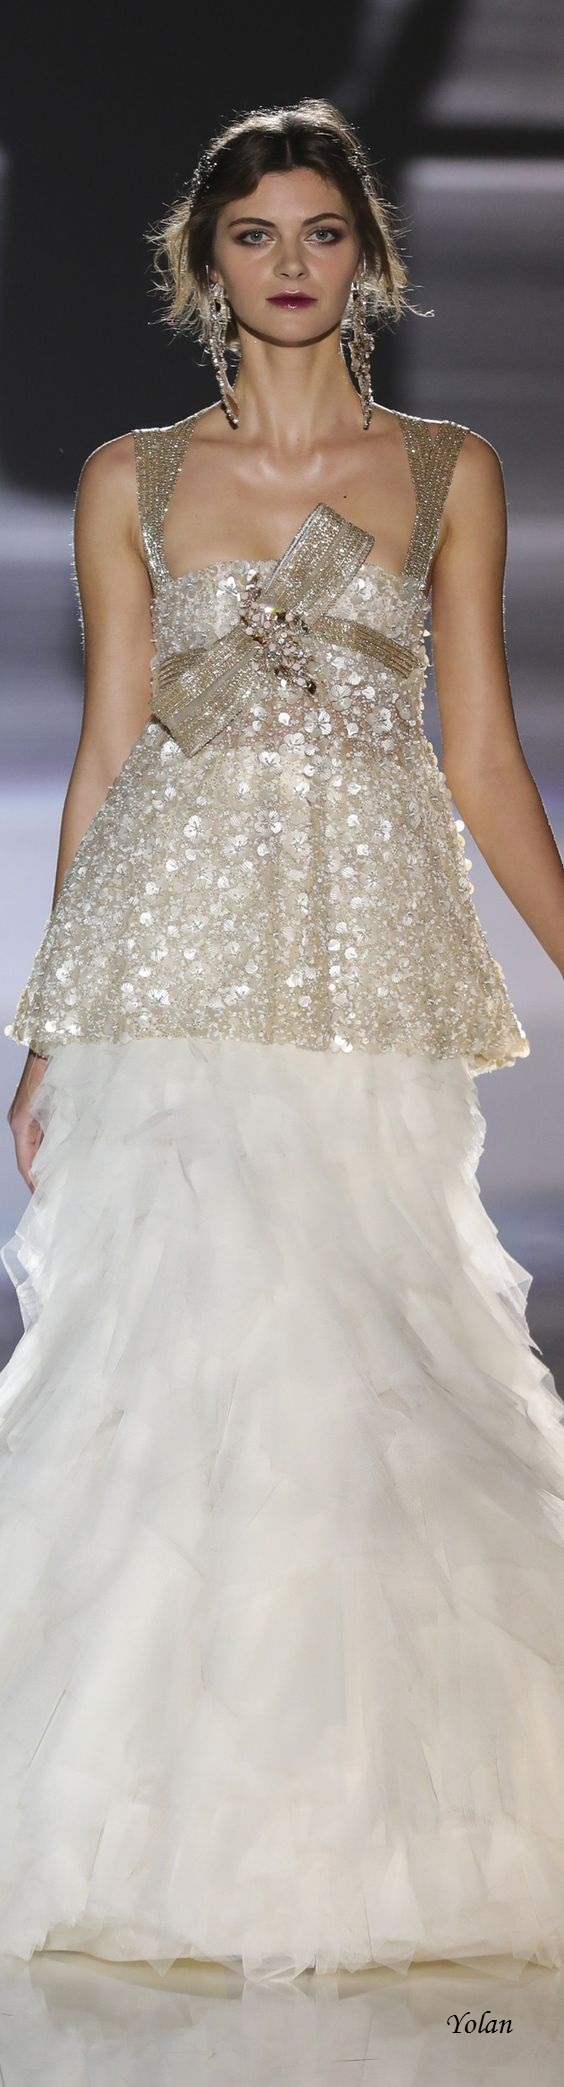 Mother of the bride dresses afternoon wedding   Bridal Jesus Piero This would be so beautiful for a christmas